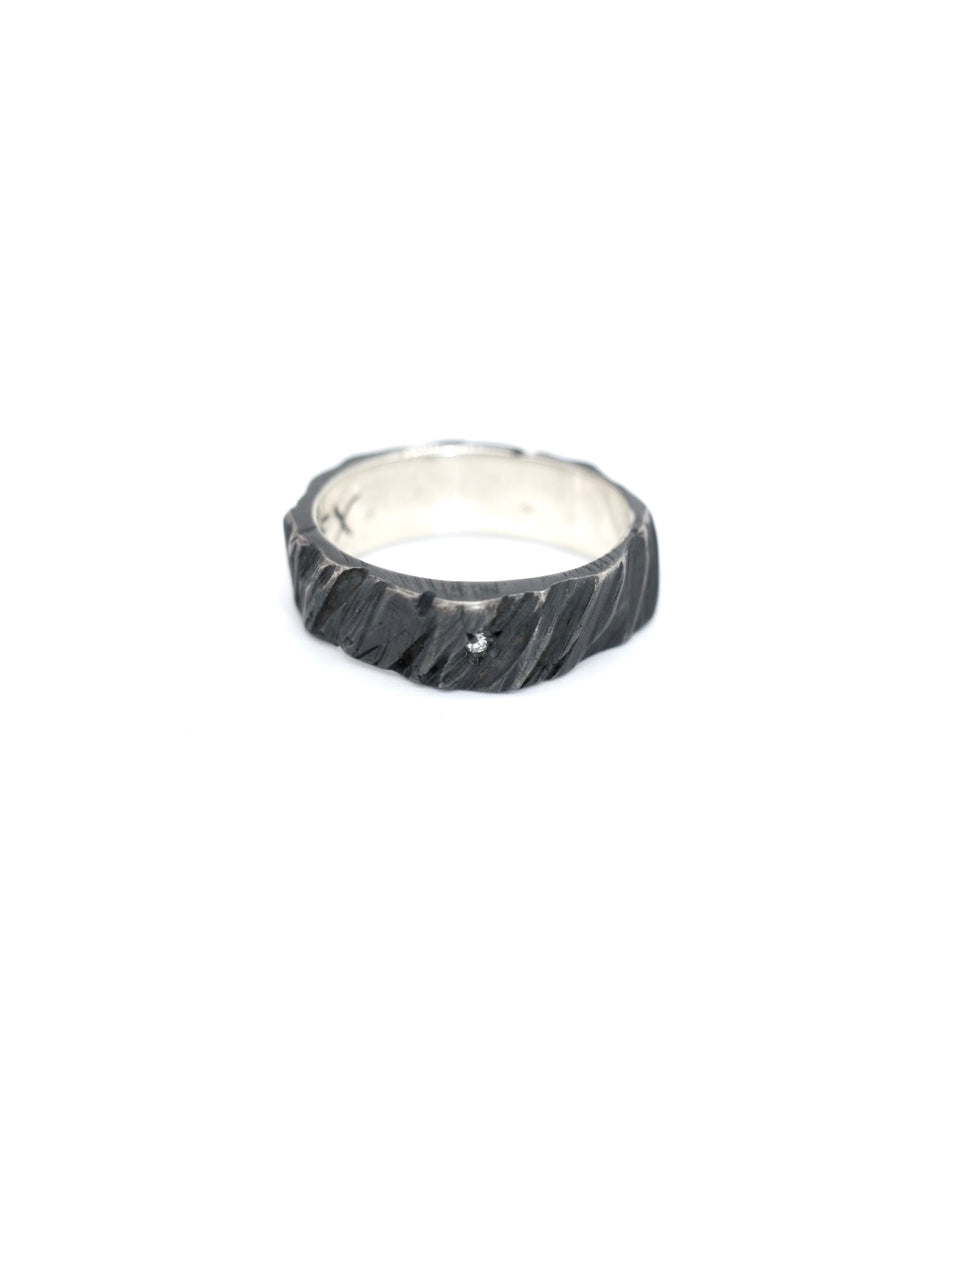 Gaspard Hex Bark Ring - Oxidized Silver Diamond